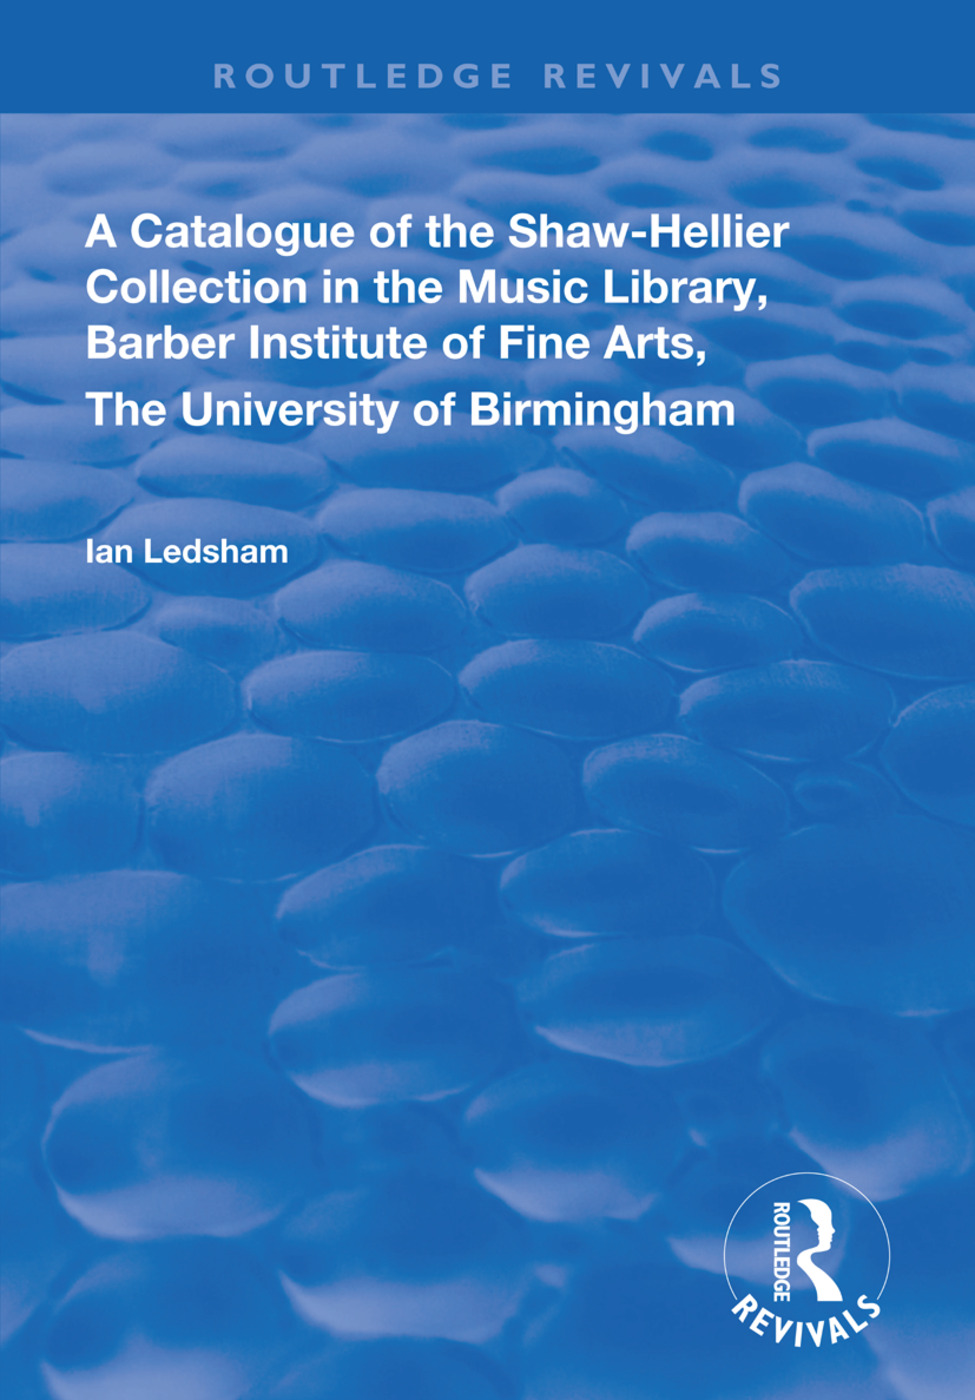 A Catalogue of the Shaw-Hellier Collection book cover